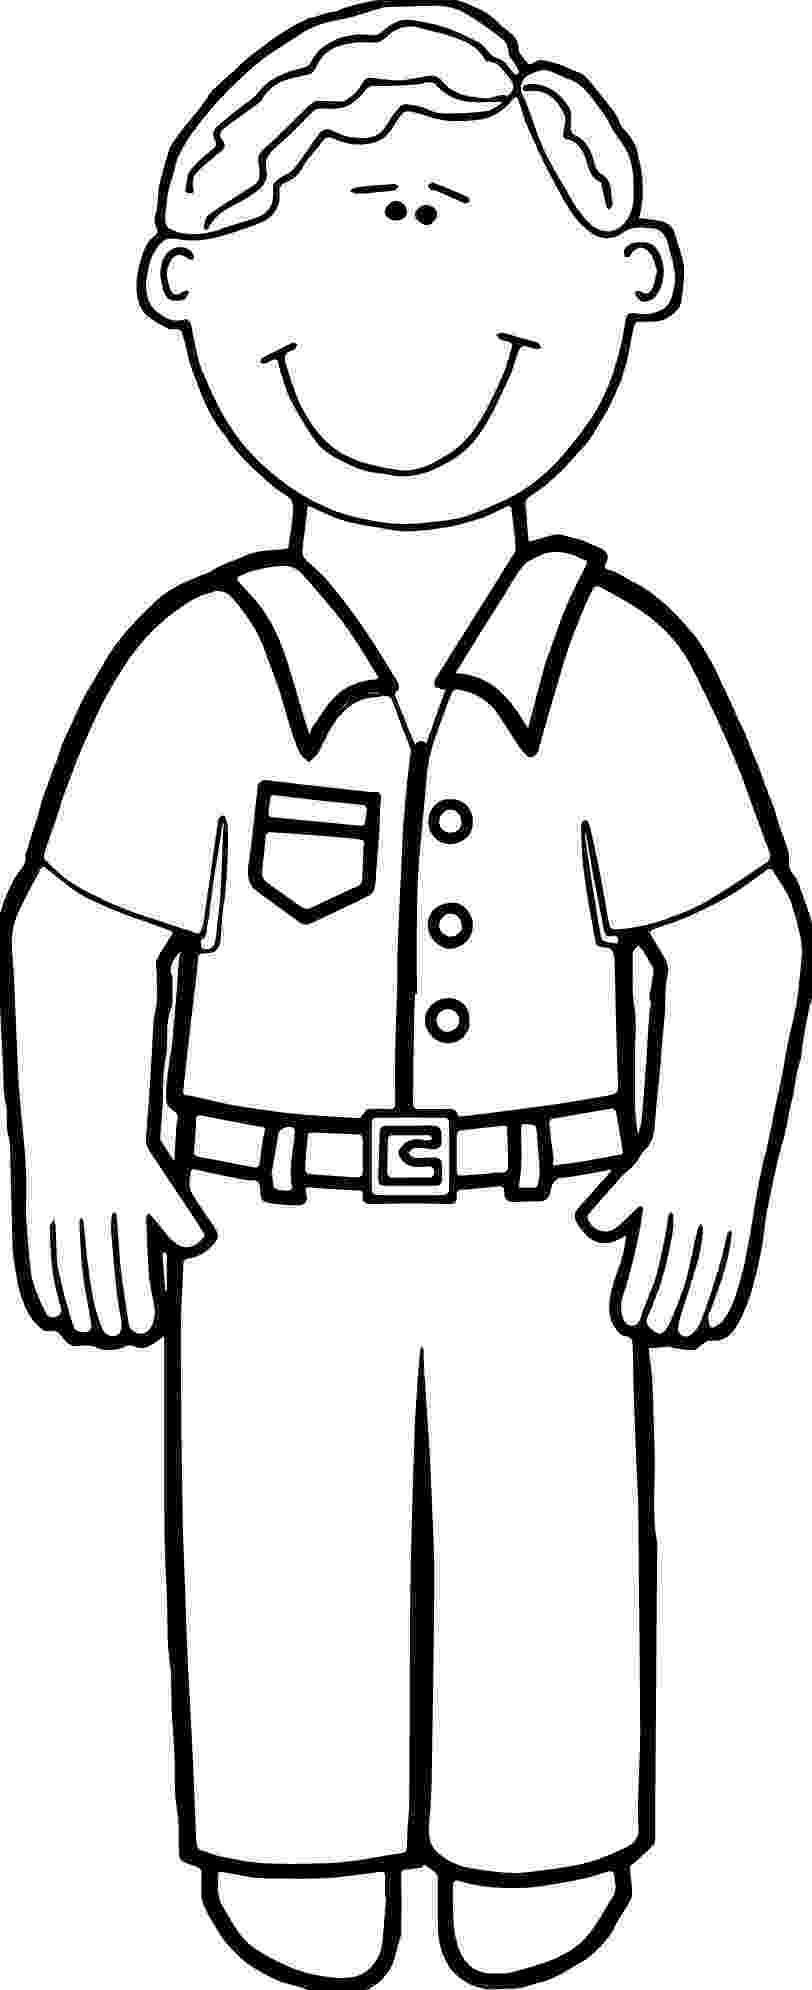 daddy coloring pages father coloring page getcoloringpagescom daddy coloring pages